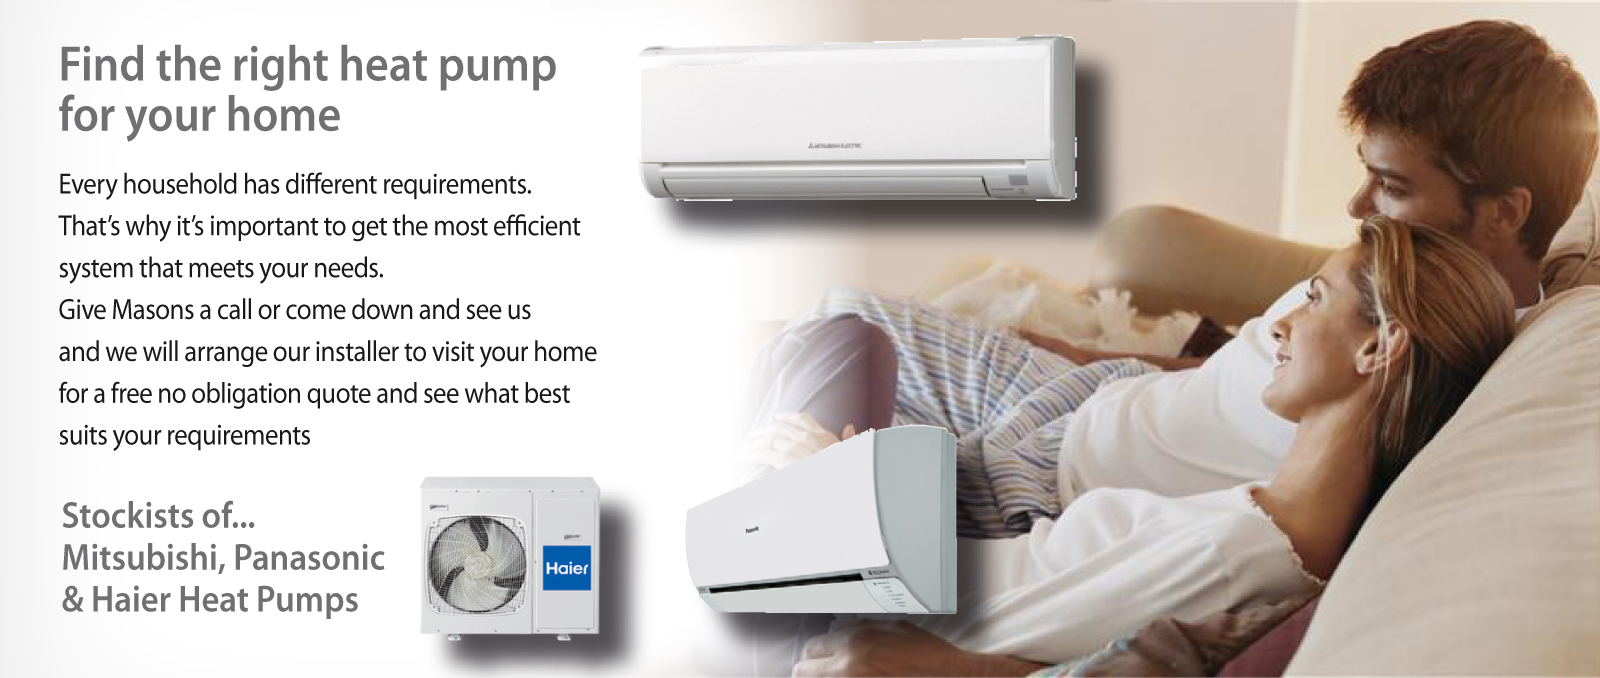 Website Heat Pump Slider